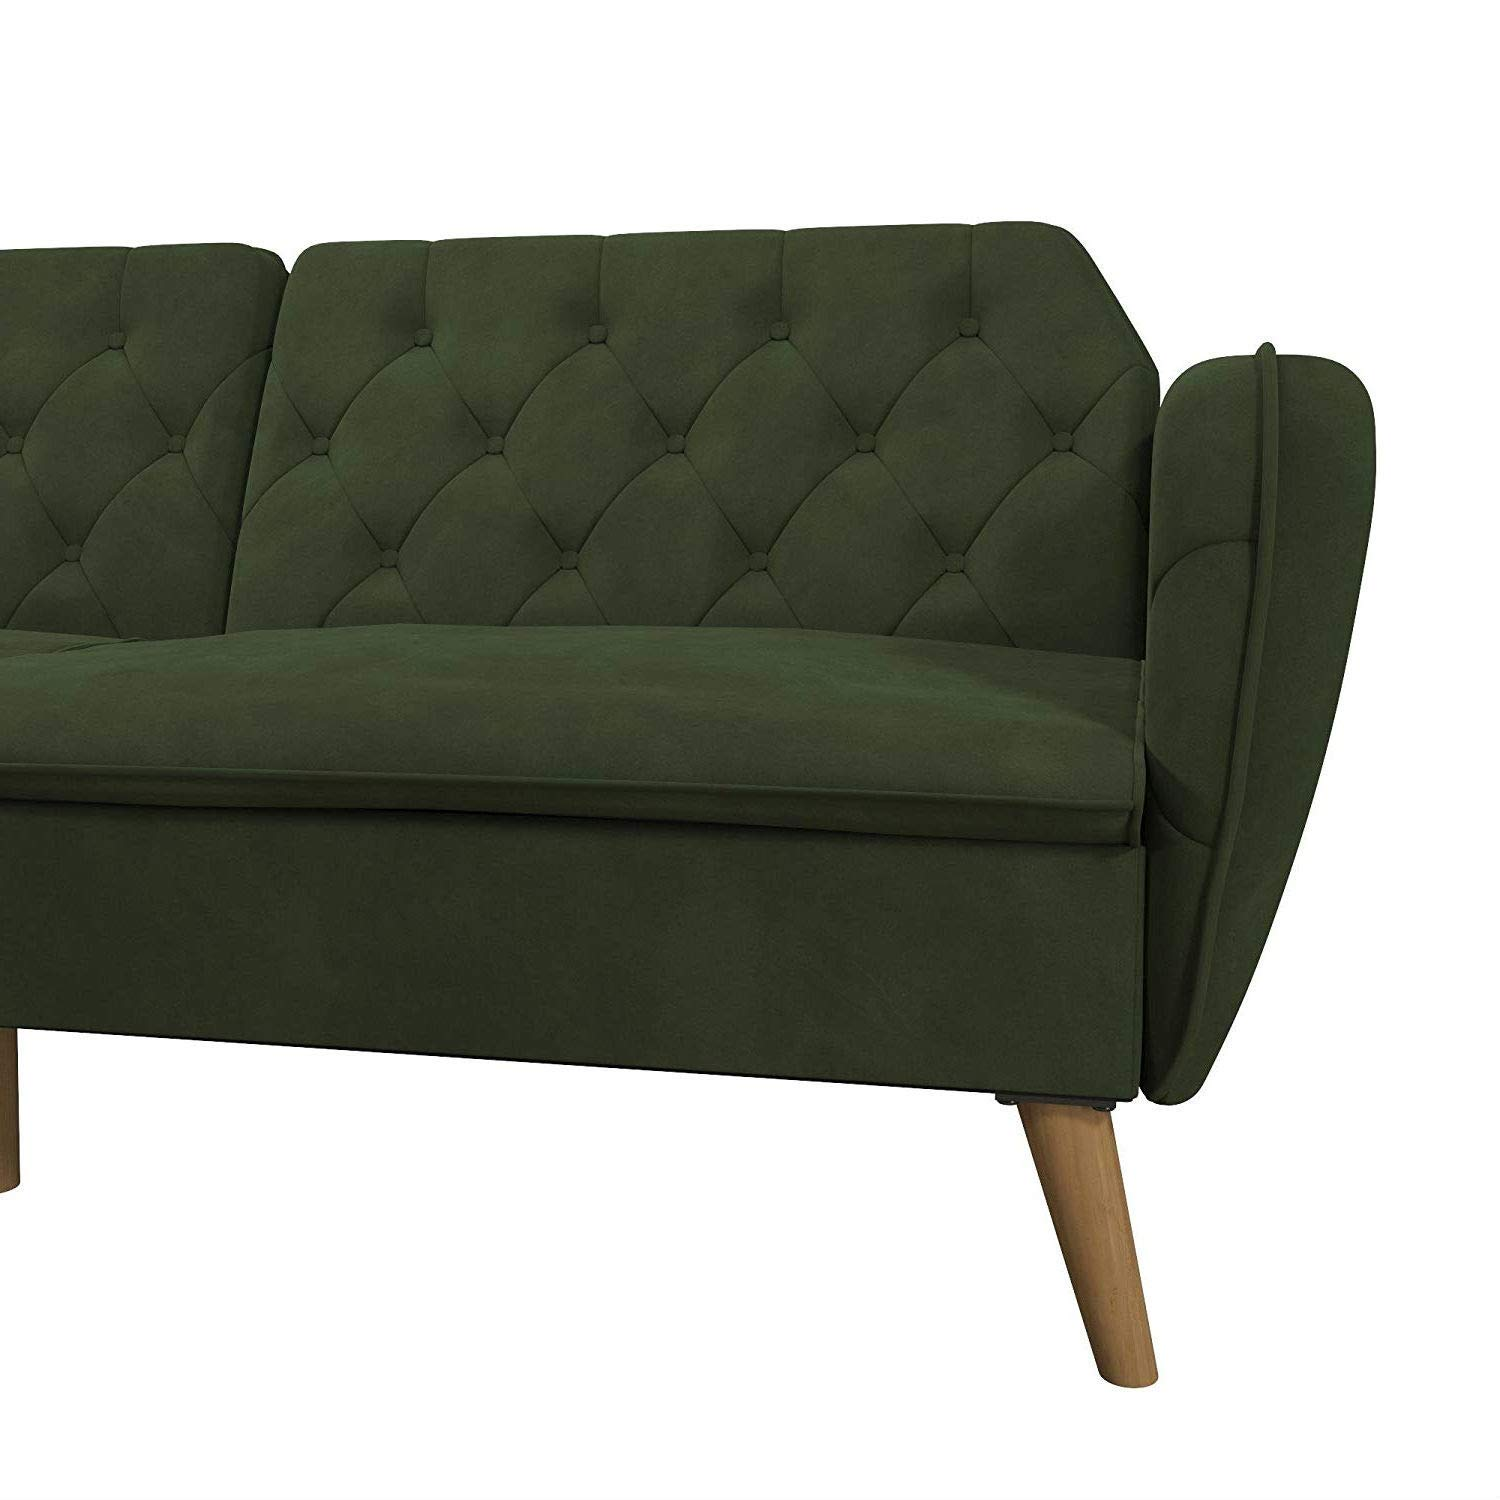 Trustpurchase Memory Foam Futon Sofa Bed with Green Velvet Upholstery and Wood Legs, Brings Elegance and Sophistication w Vintage Silhouette, Rounded Lines Button-Tufted Details Soft Velvet Upholstery